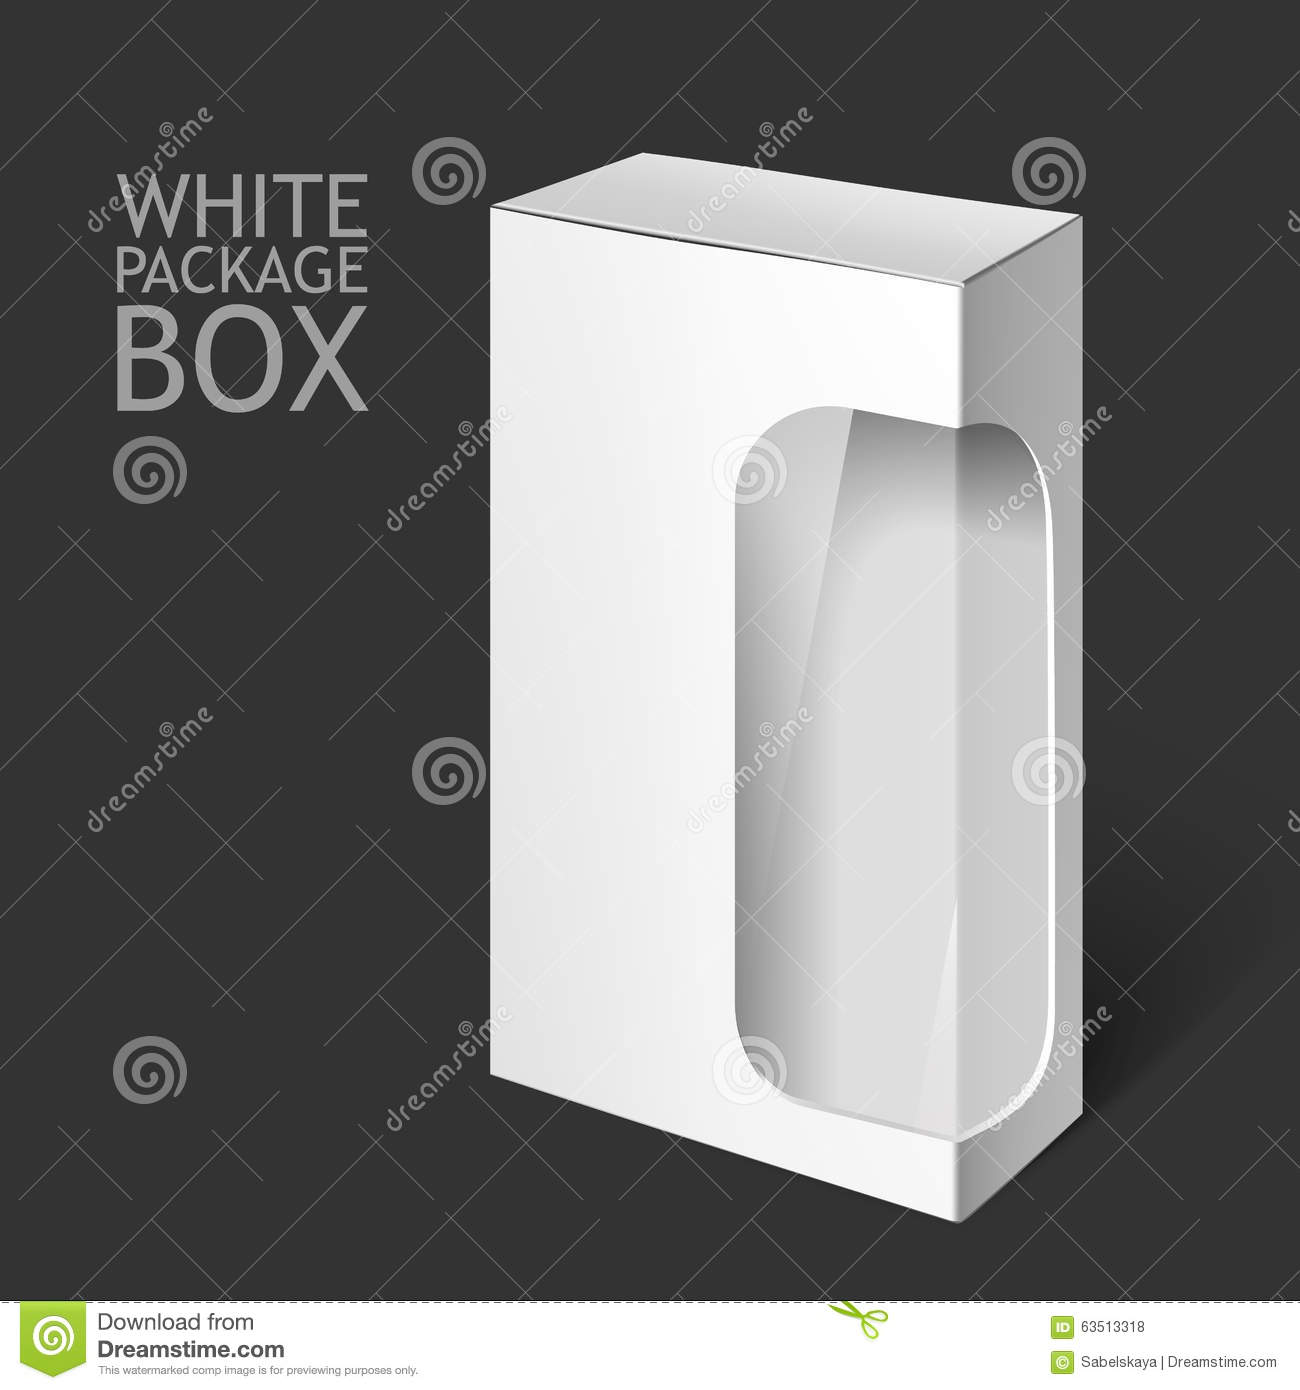 White package box with window mockup template stock illustration white package box with window mockup template buycottarizona Gallery